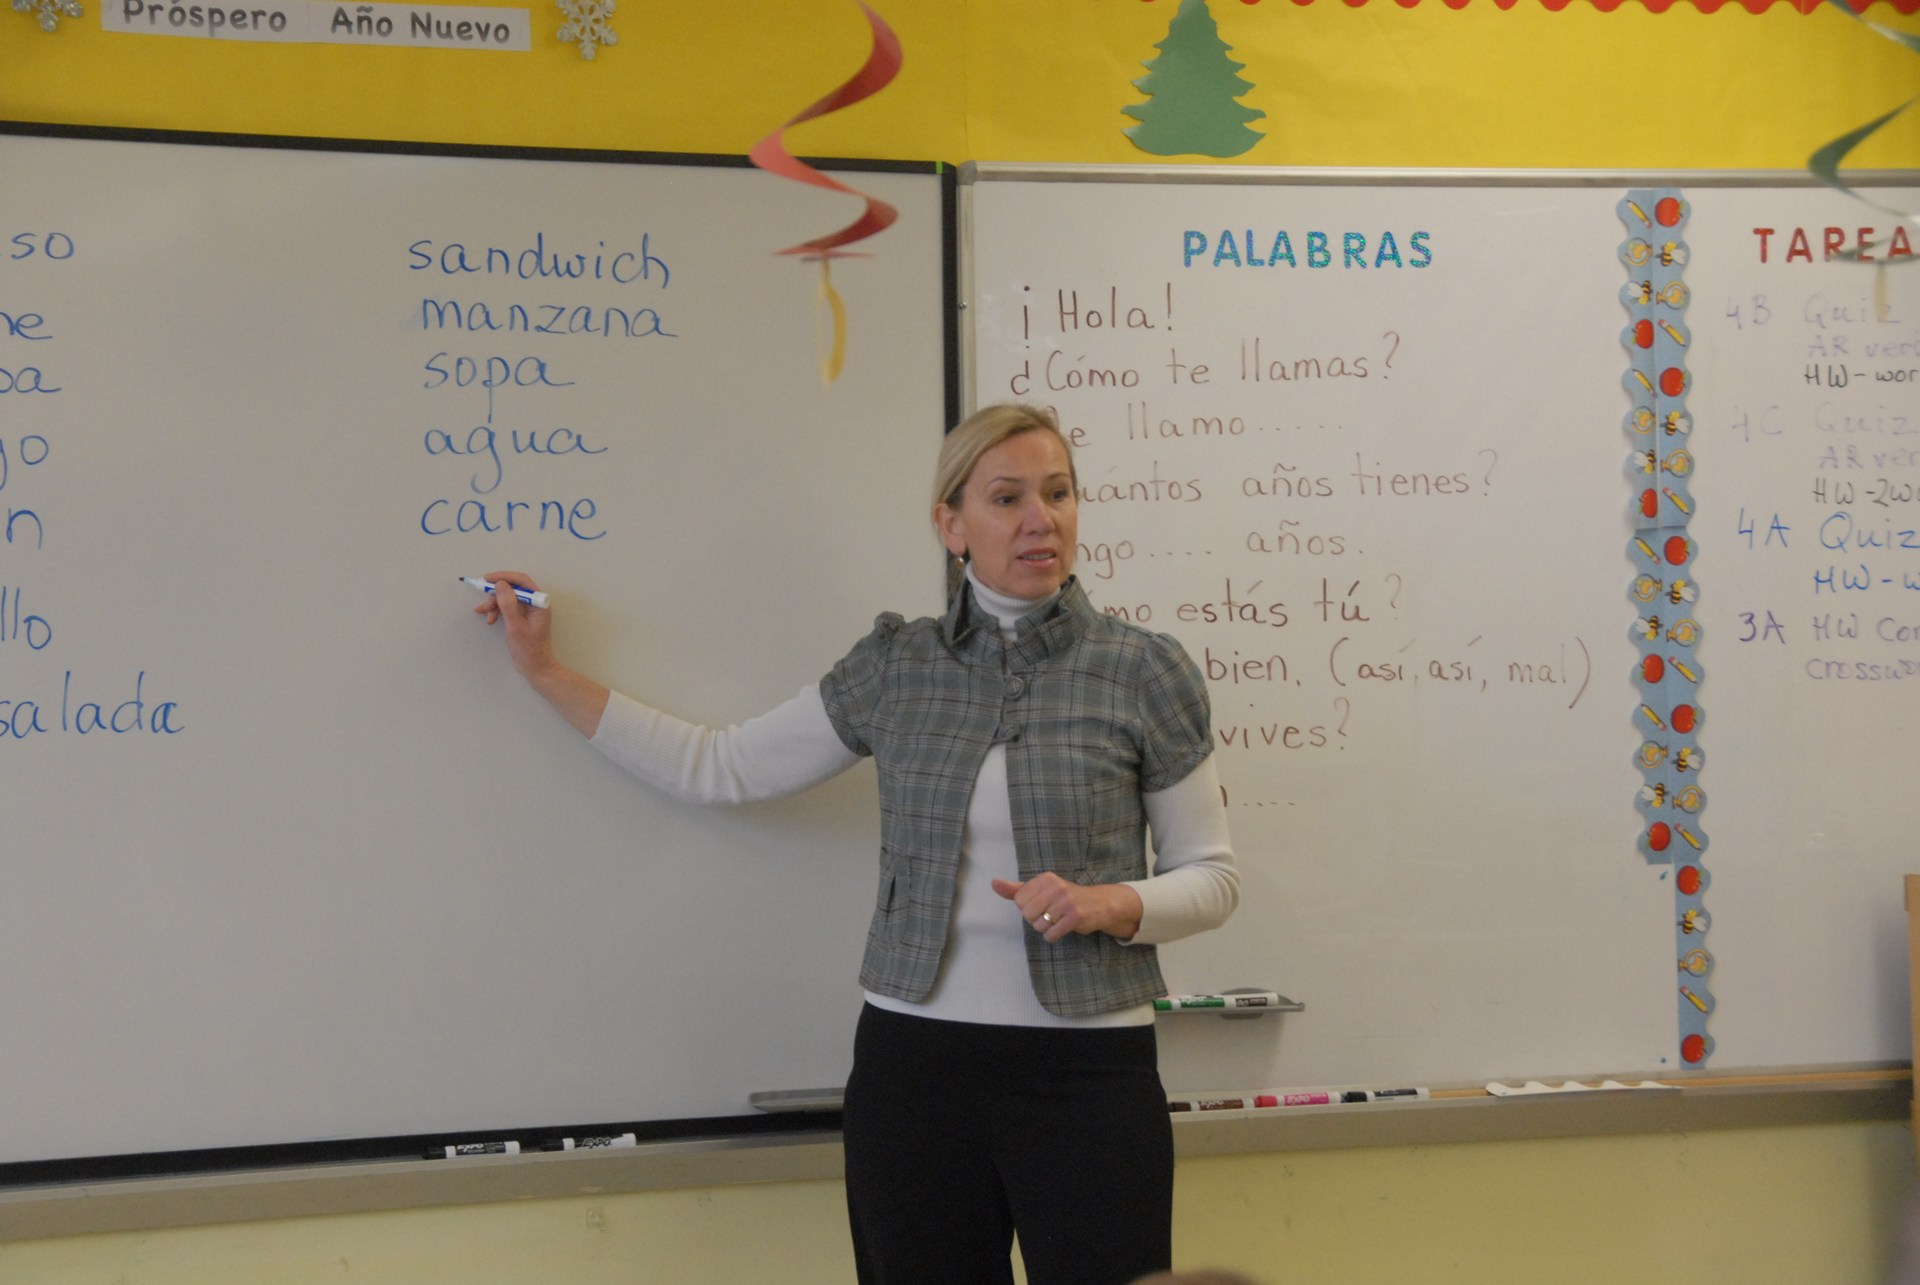 Spanish teacher showing words on board